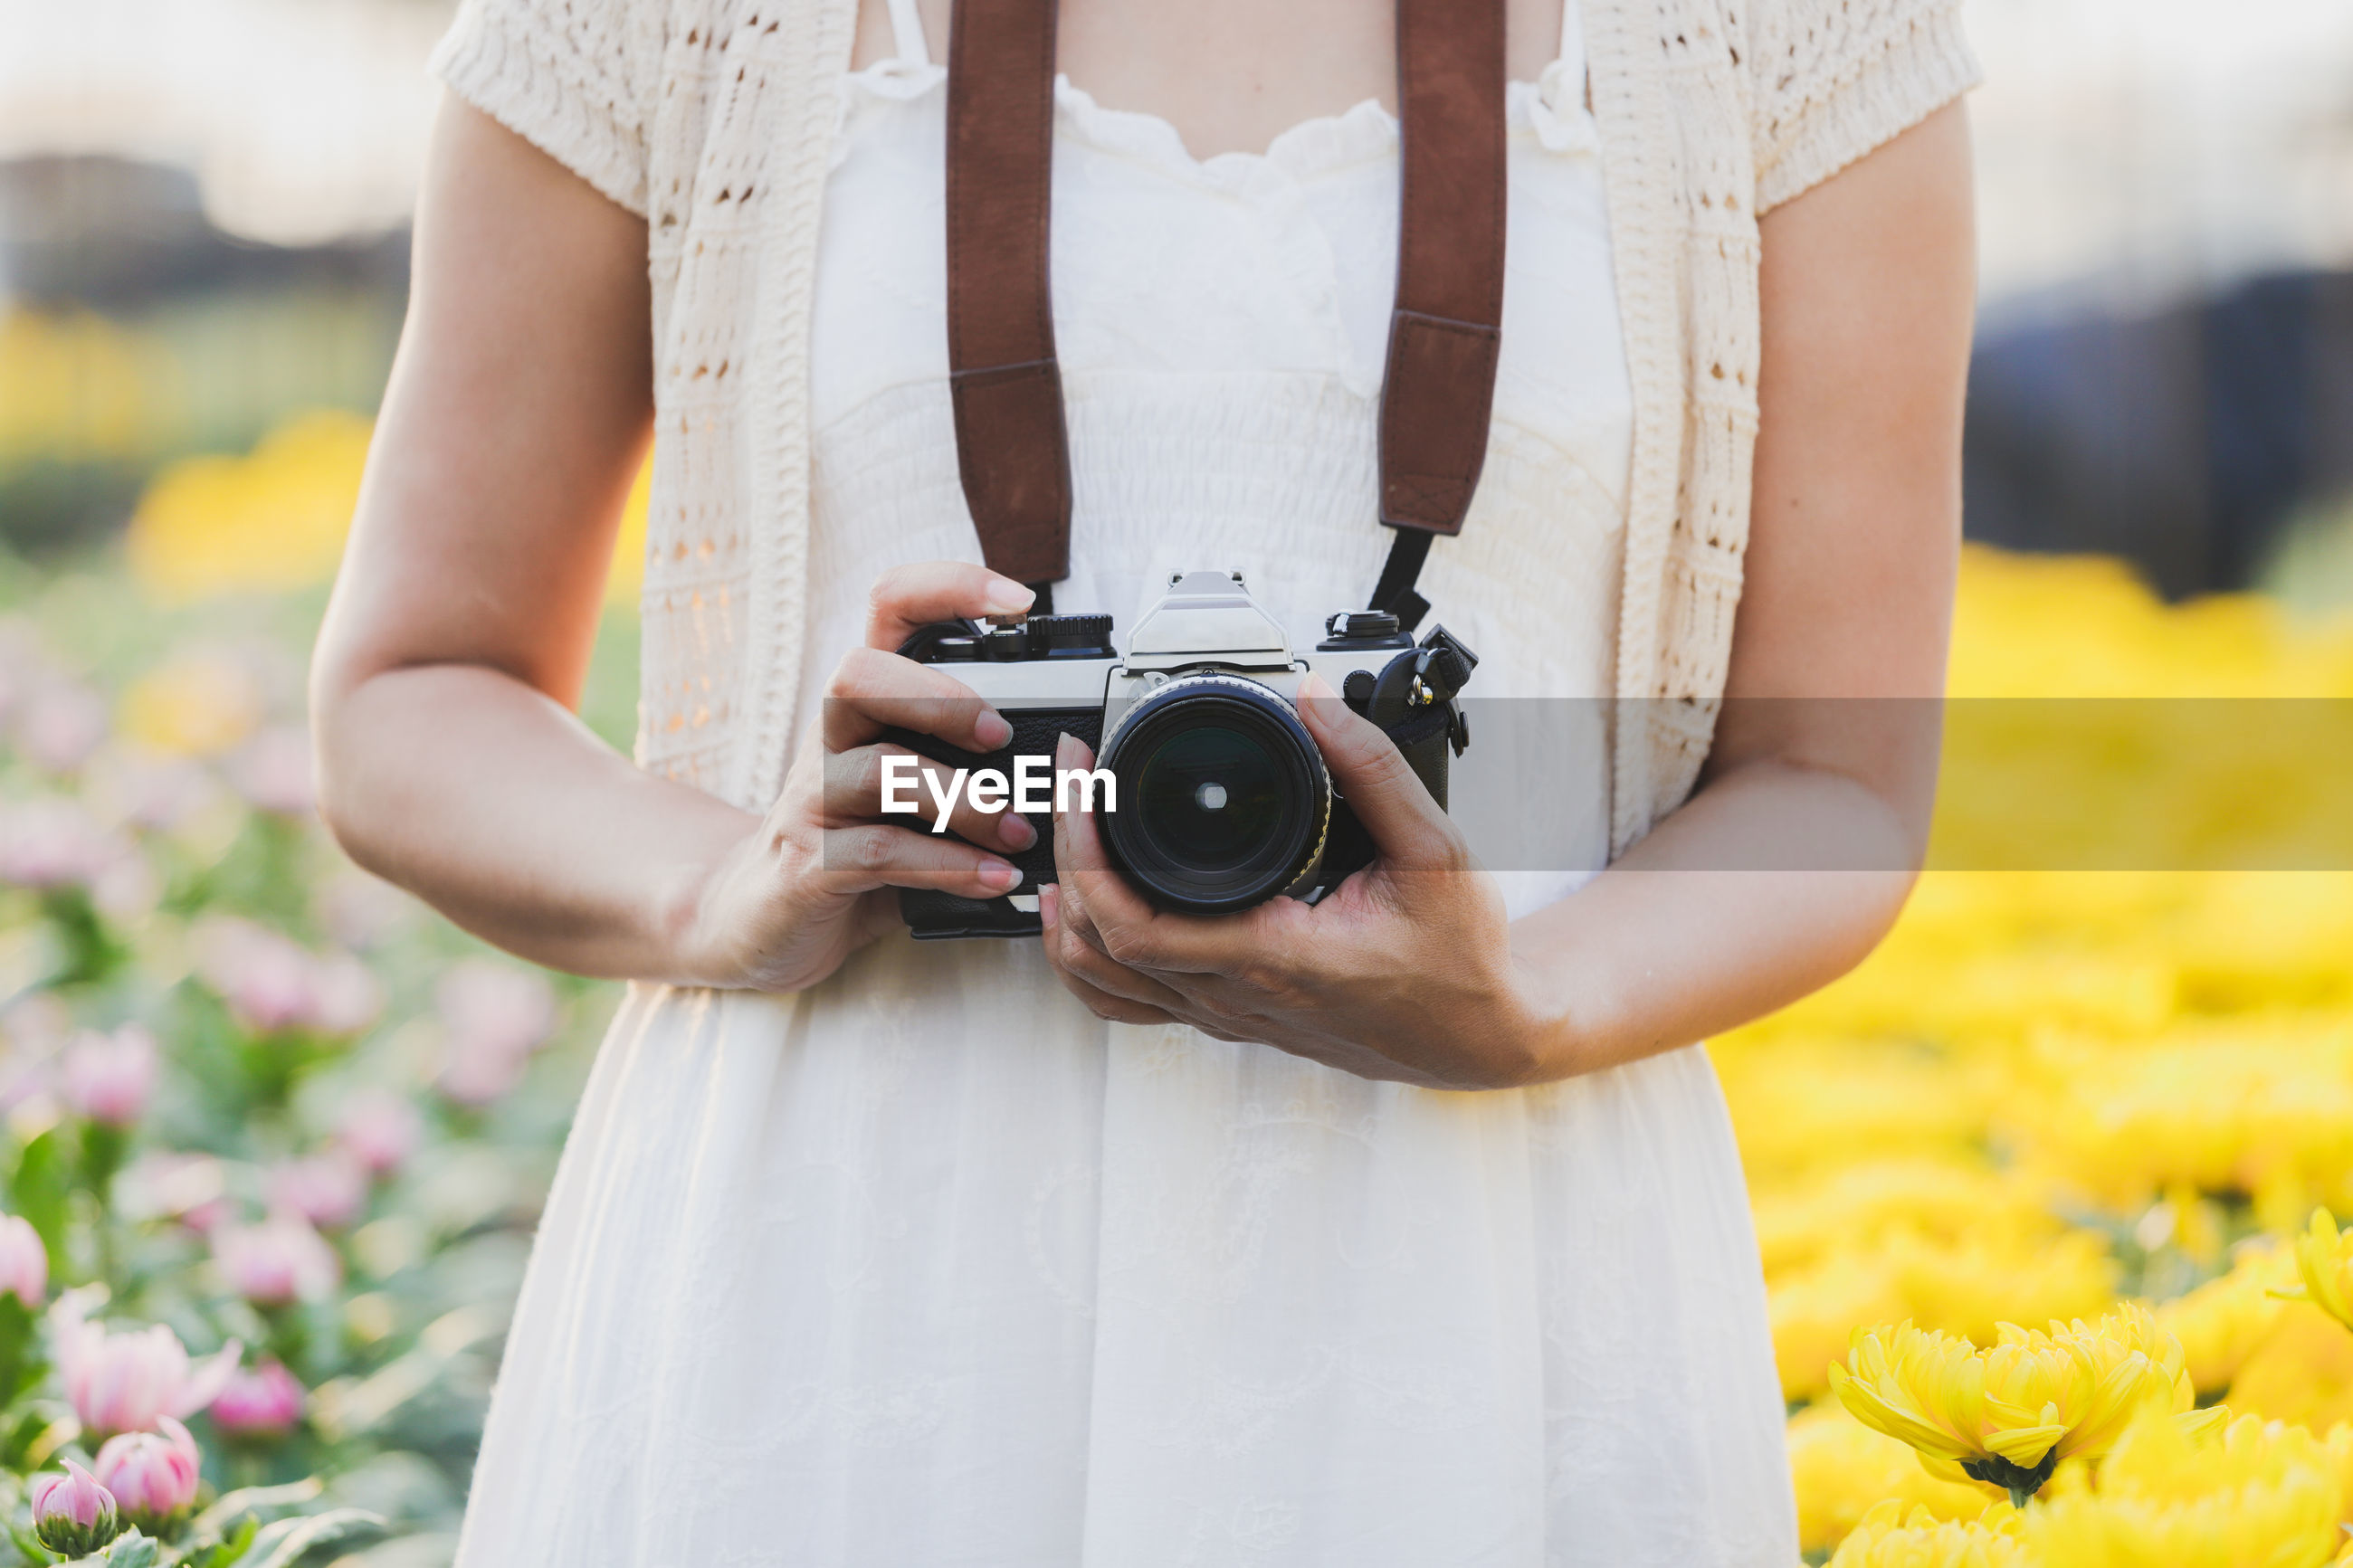 MIDSECTION OF WOMAN HOLDING CAMERA WHILE STANDING BY FLOWER